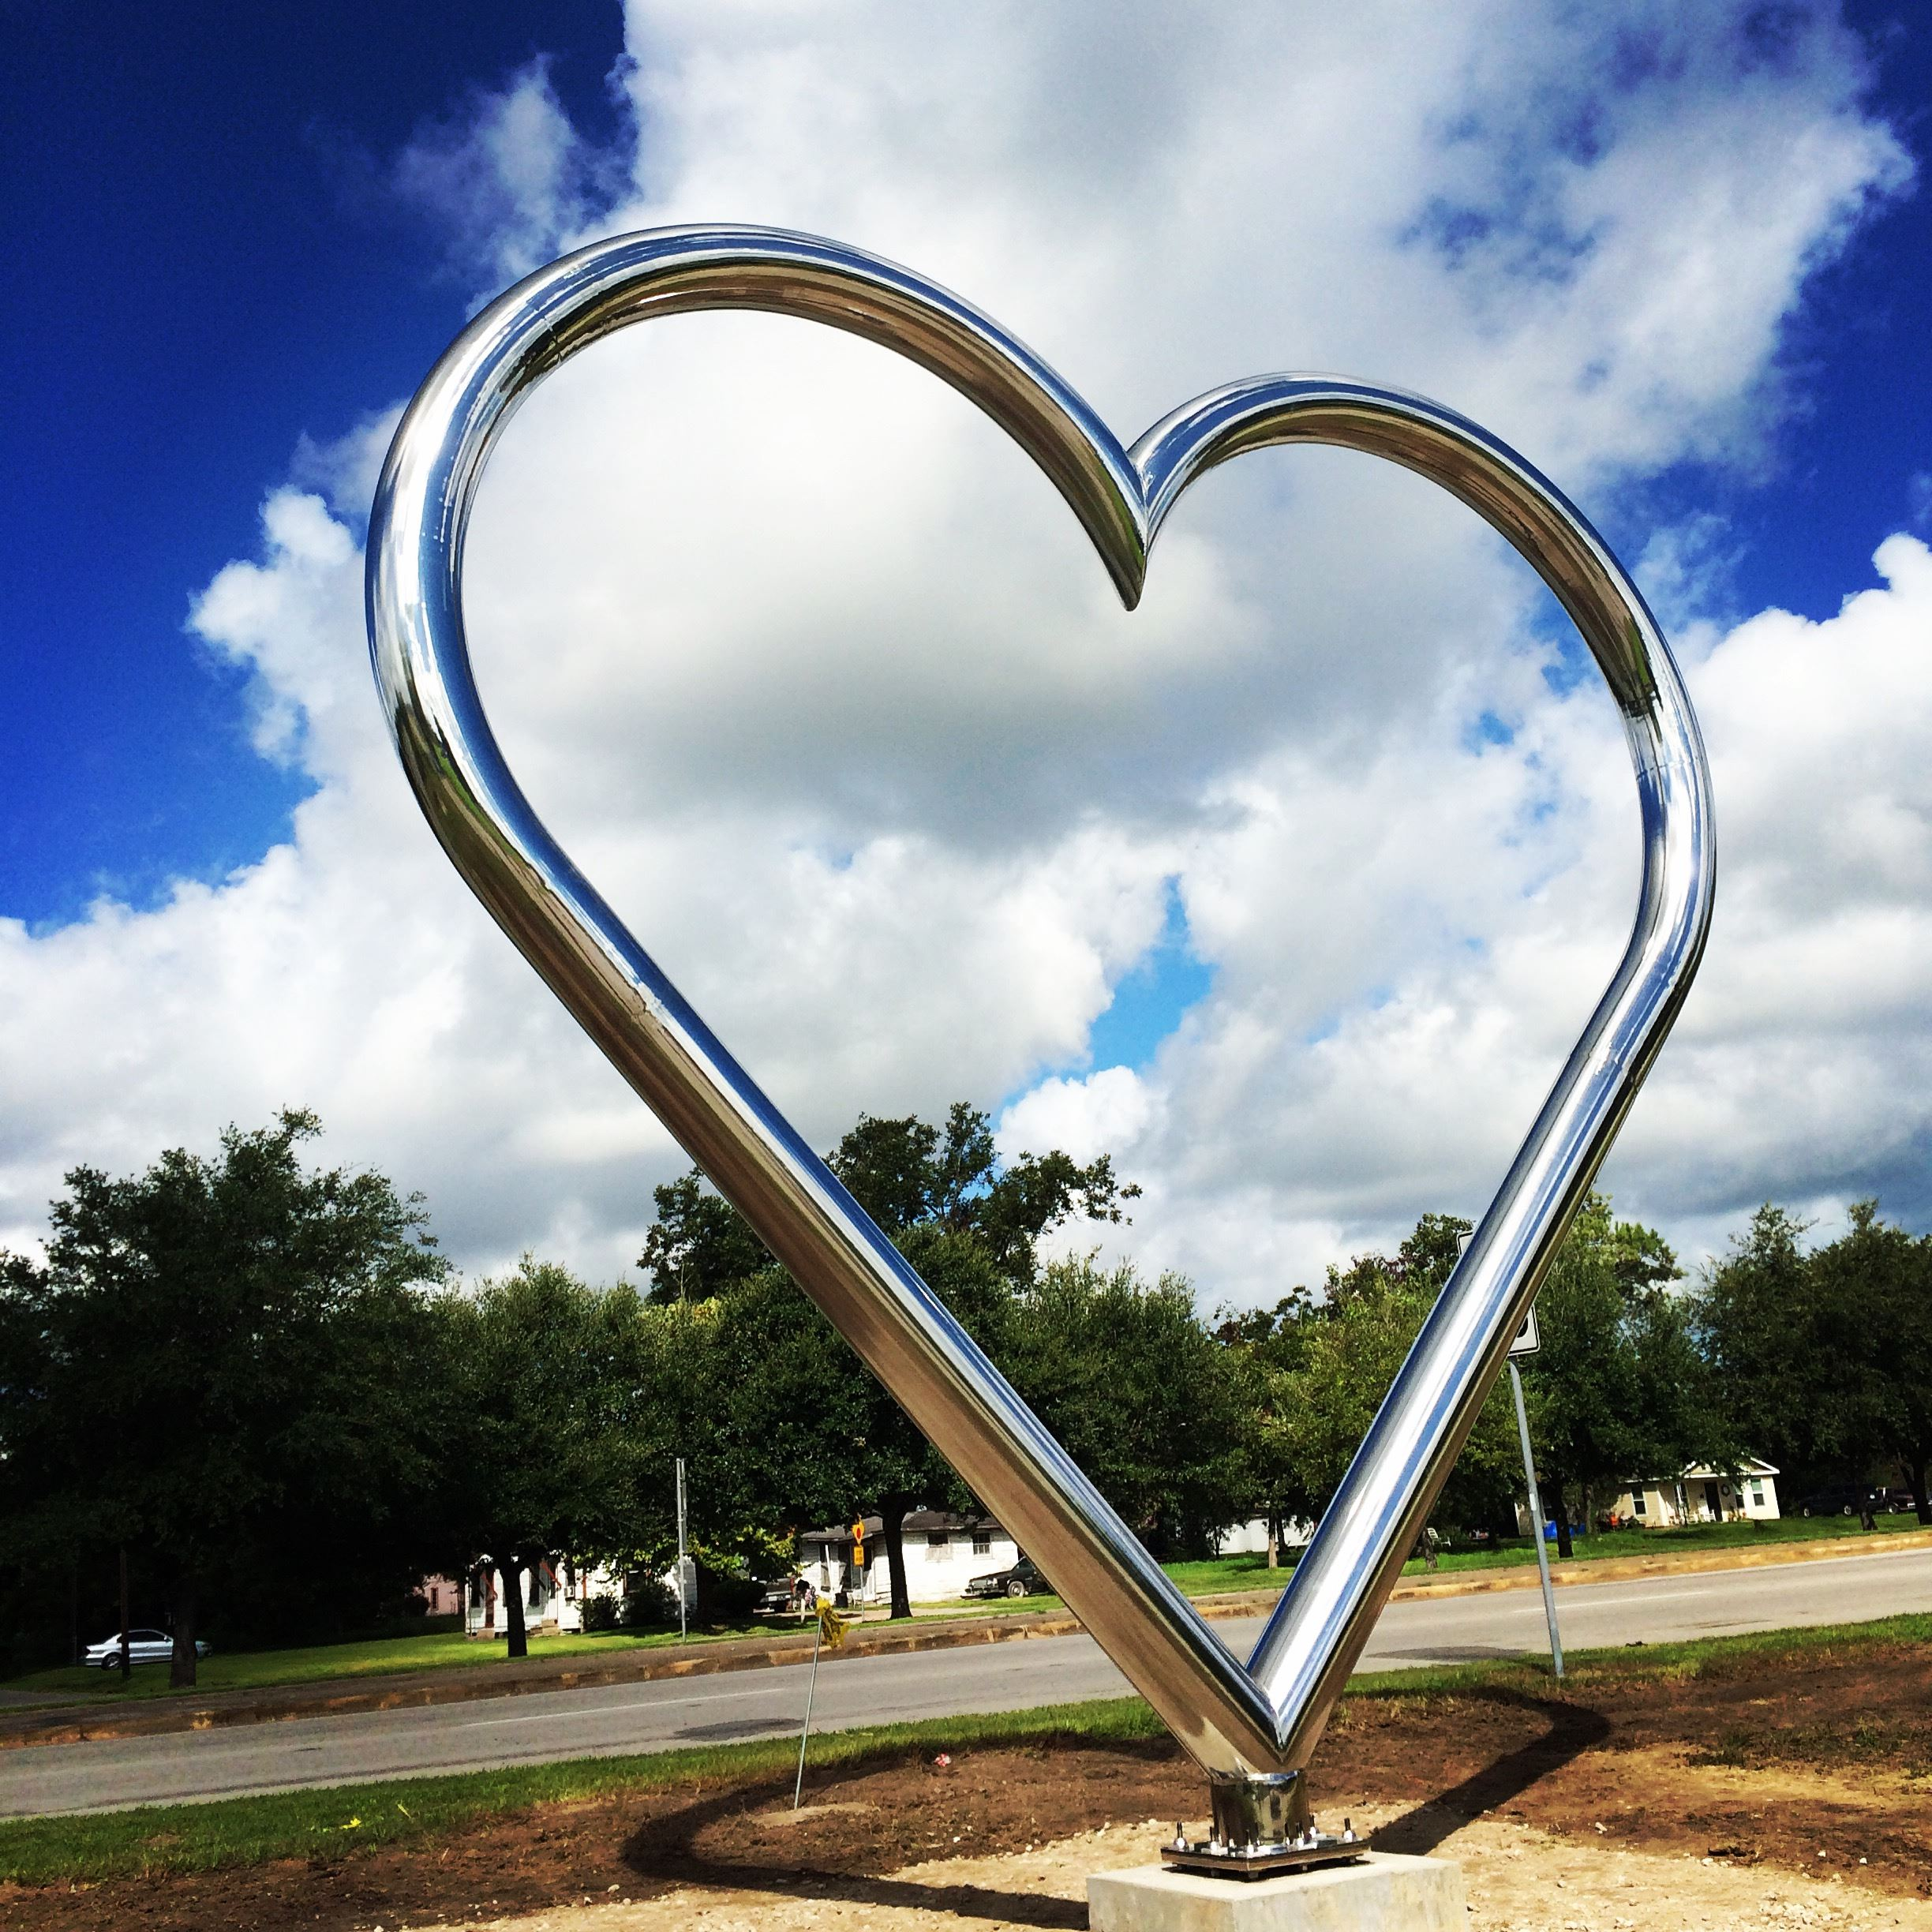 Metal Heart Sculpture in Park